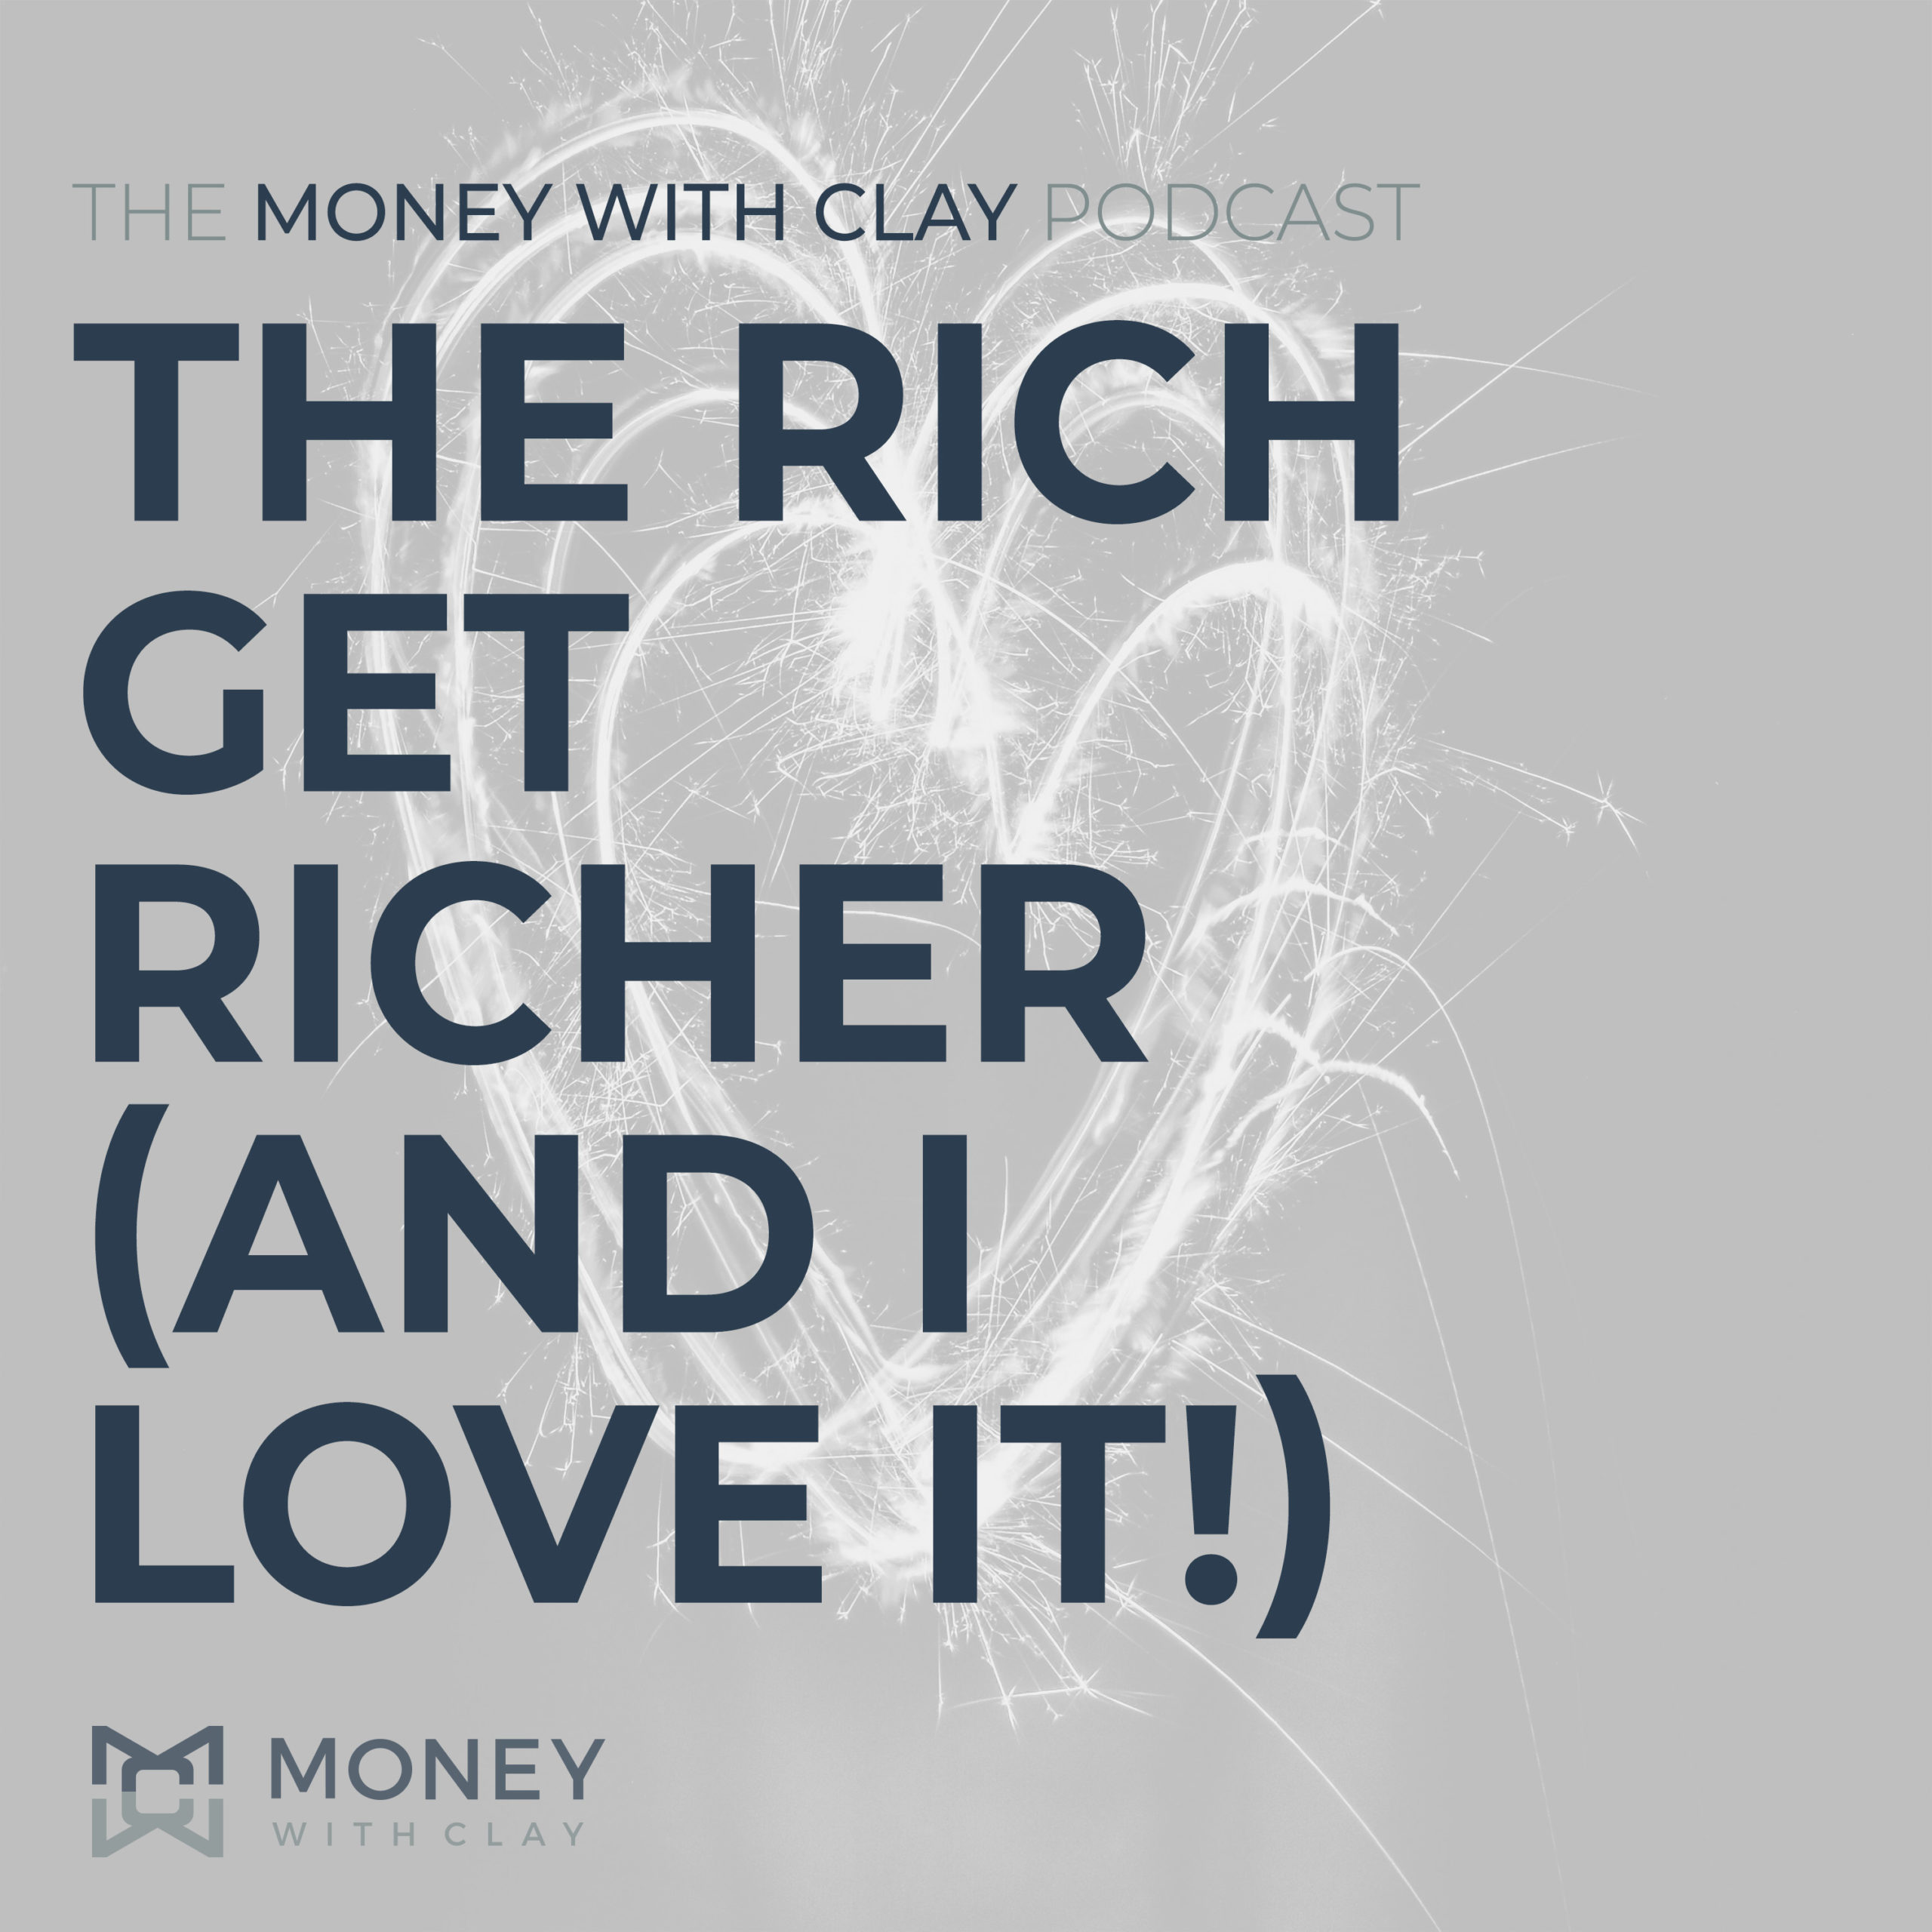 The Rich Get Richer (and I Love It!)